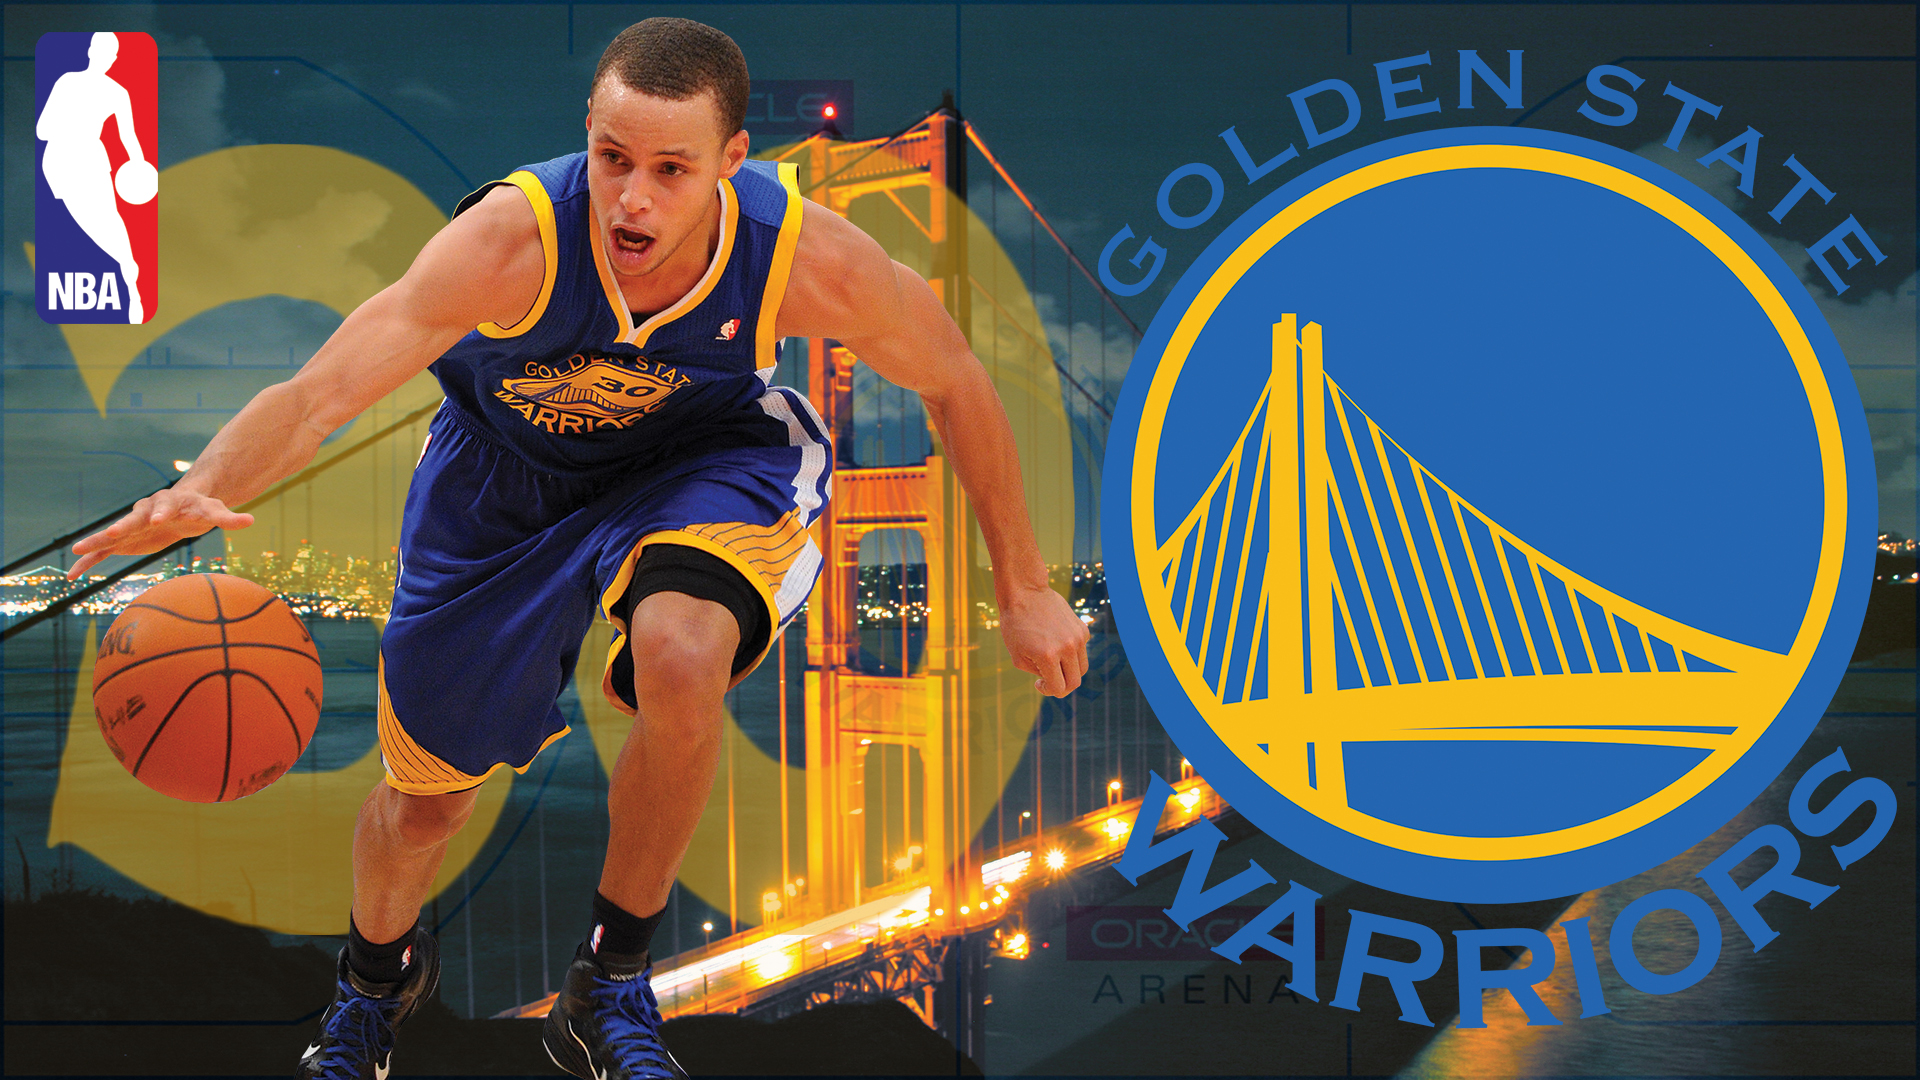 golden state wallpaper iphone 6